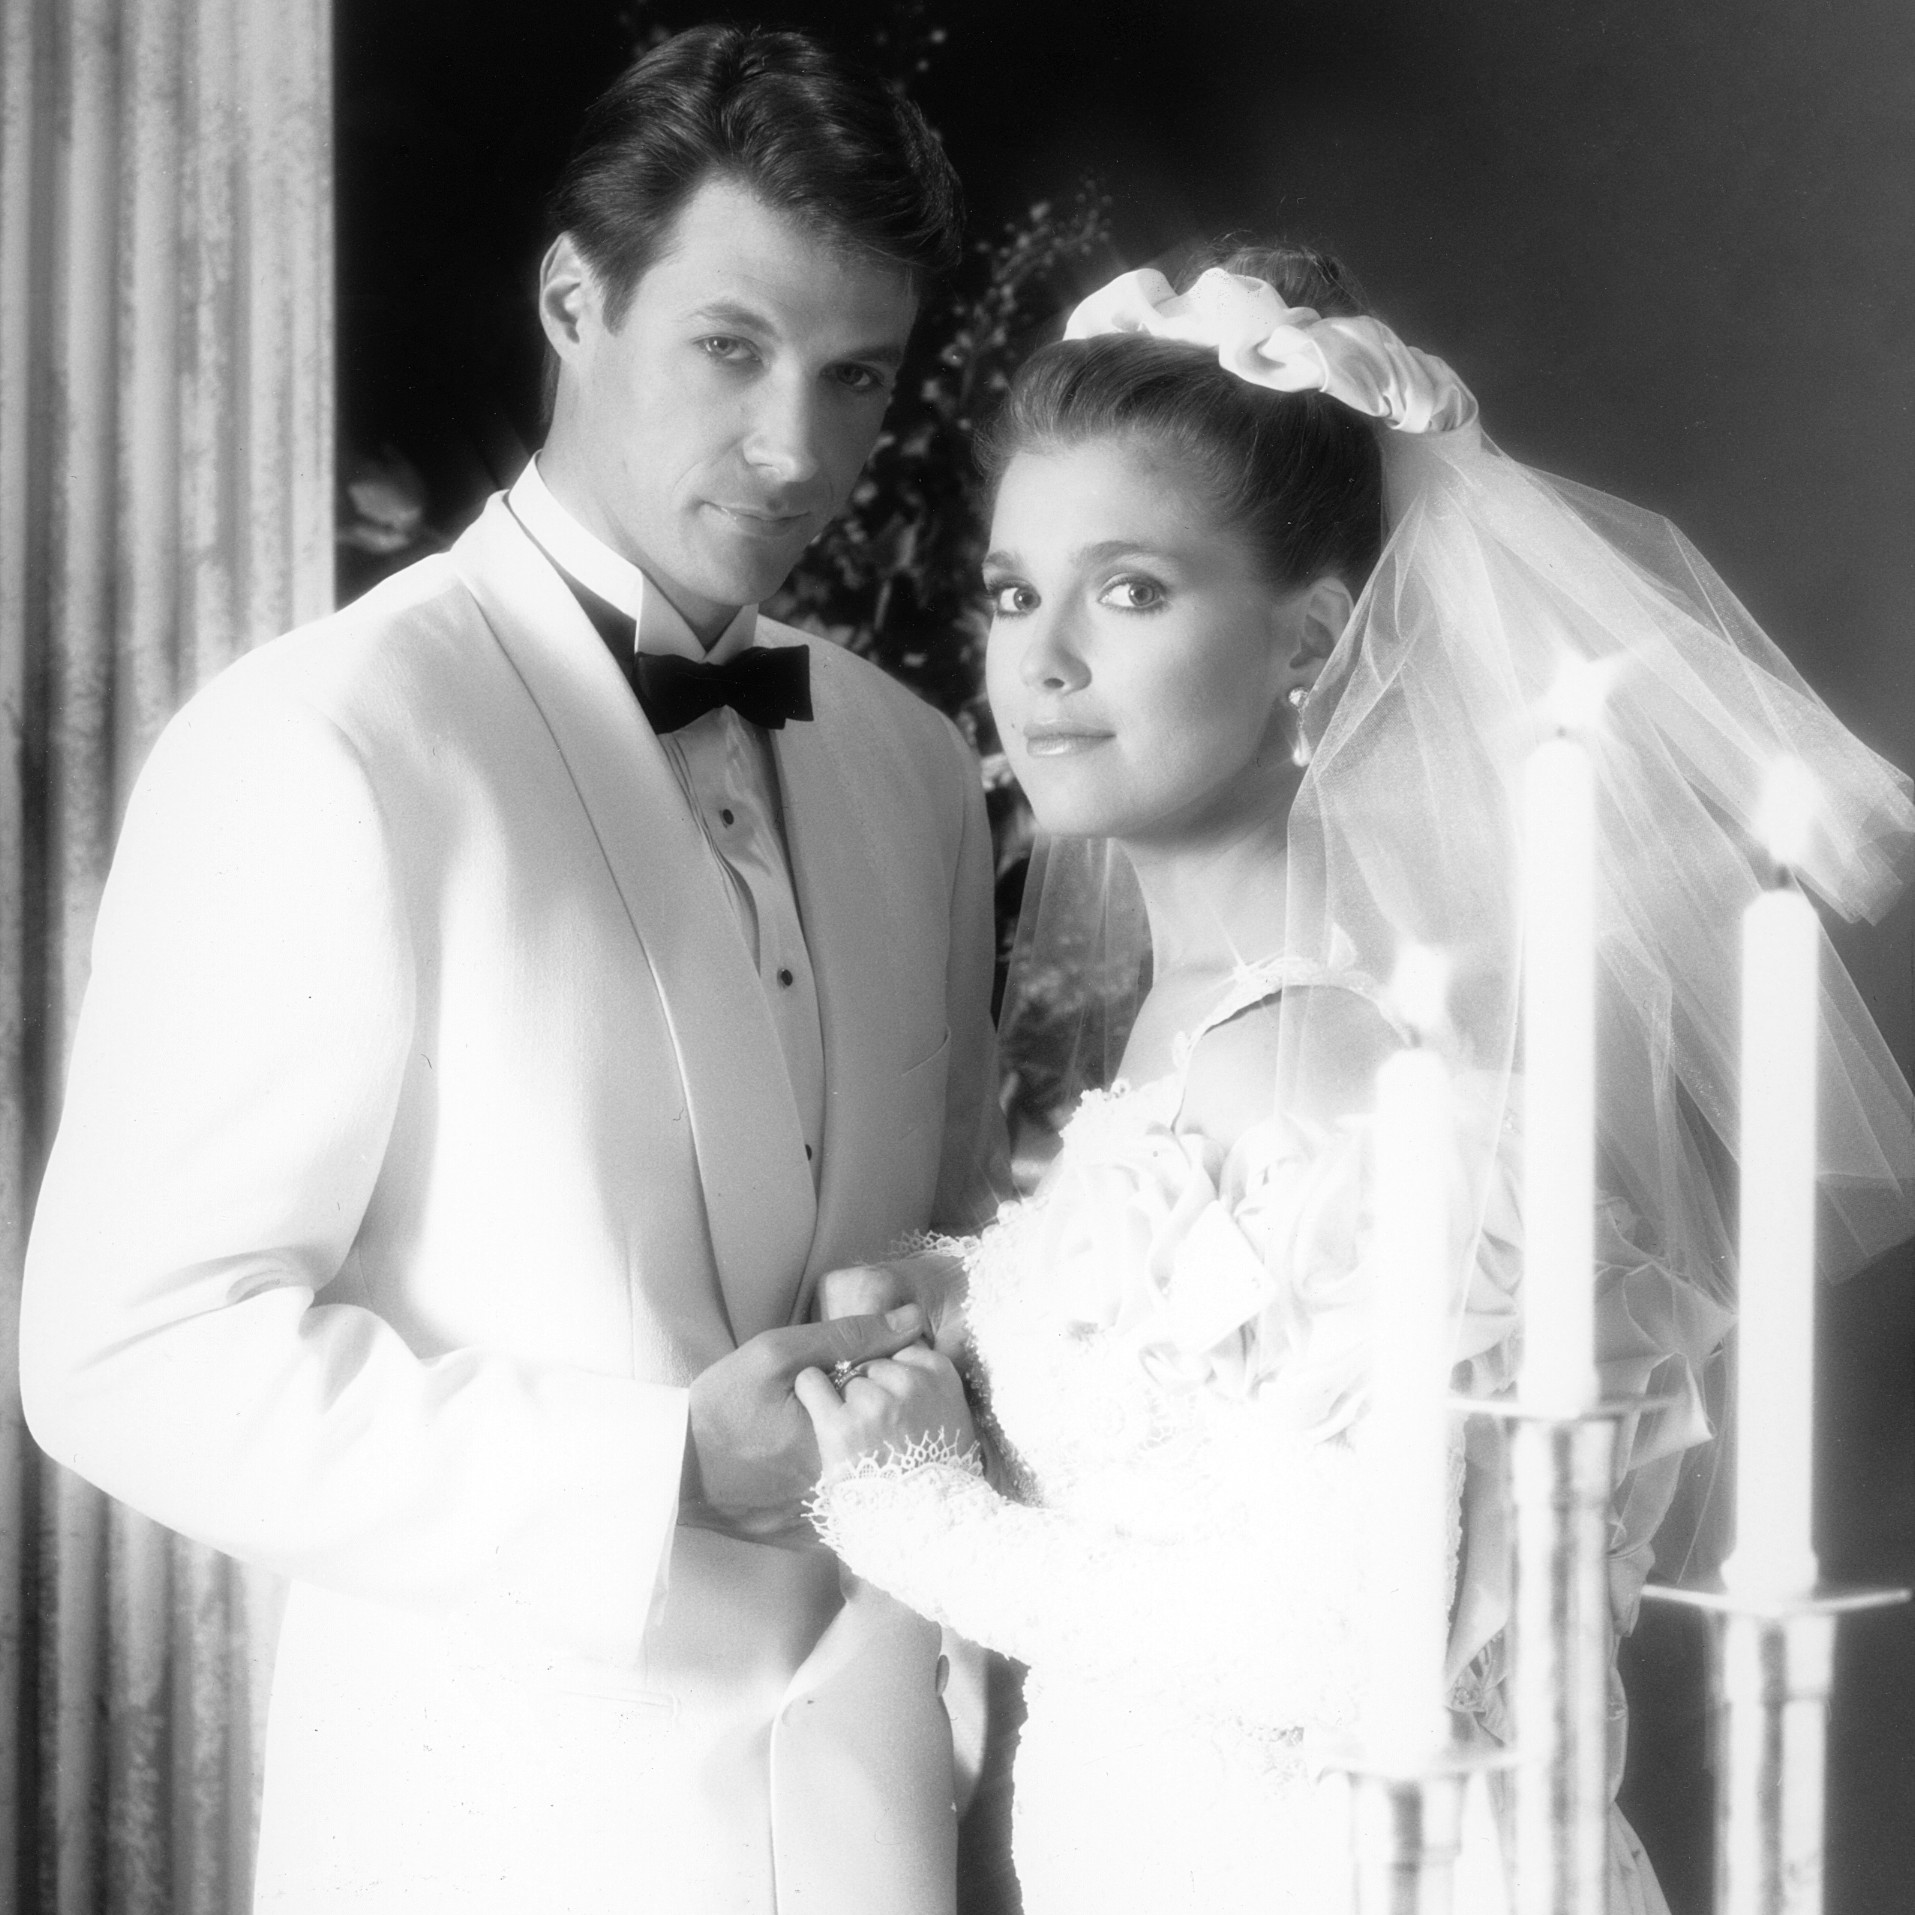 DAYS OF OUR LIVES, from left: Matthew Ashford, Melissa Reeves, 1991 jack jennifer wedding